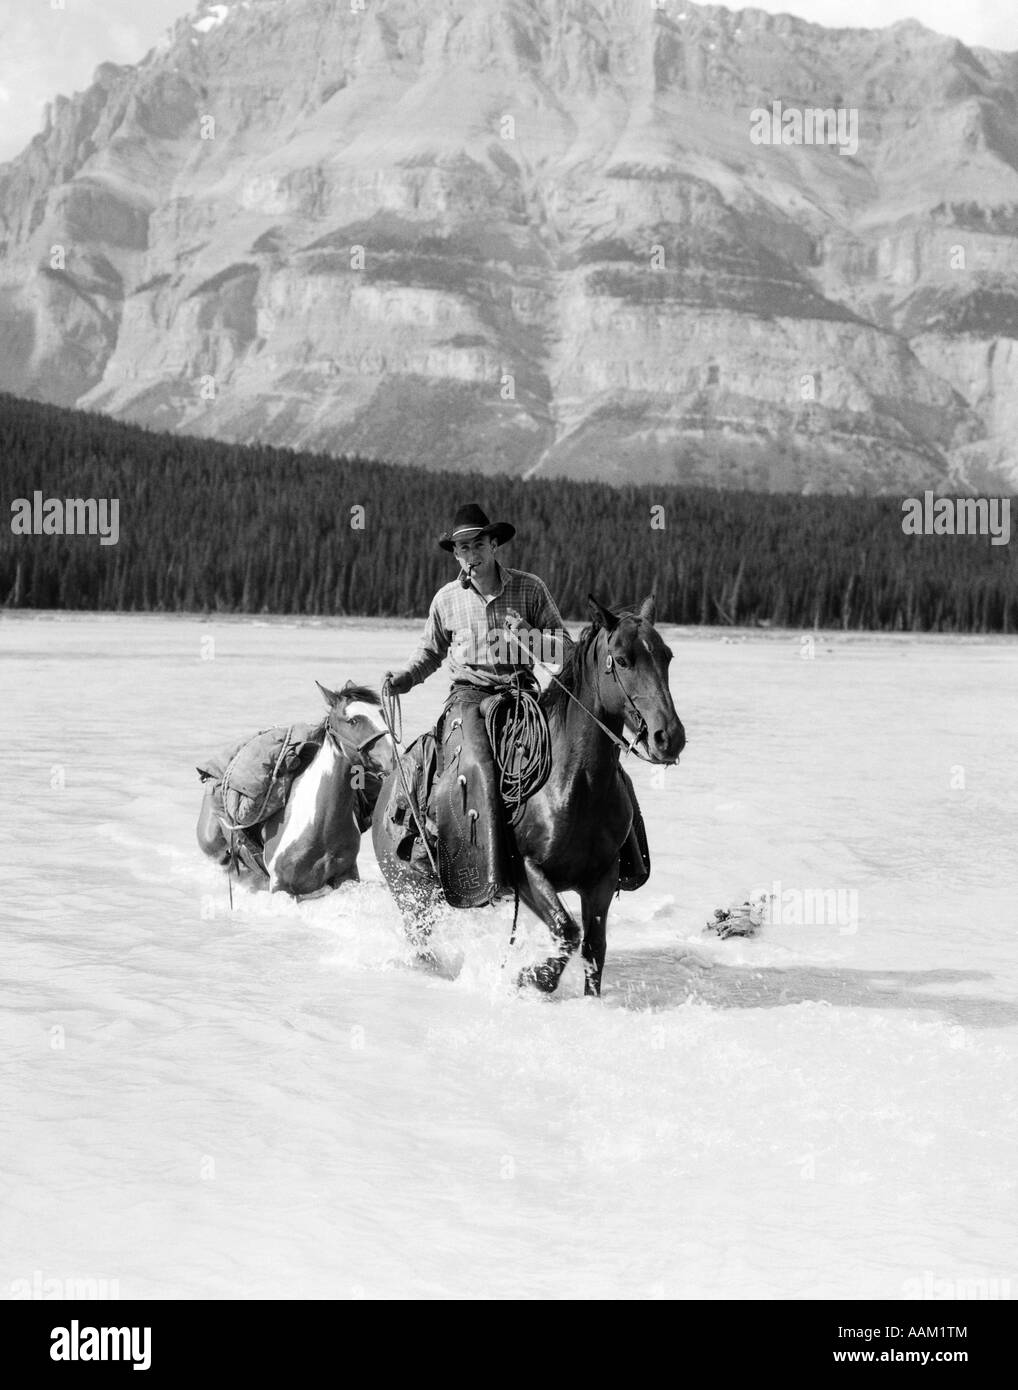 1930s COWBOY WITH BATWING CHAPS ON A BAY HORSE CROSSING A RIVER LEADING A PAINT PACK HORSE WITH MOUNTAINS IN BACKGROUND - Stock Image